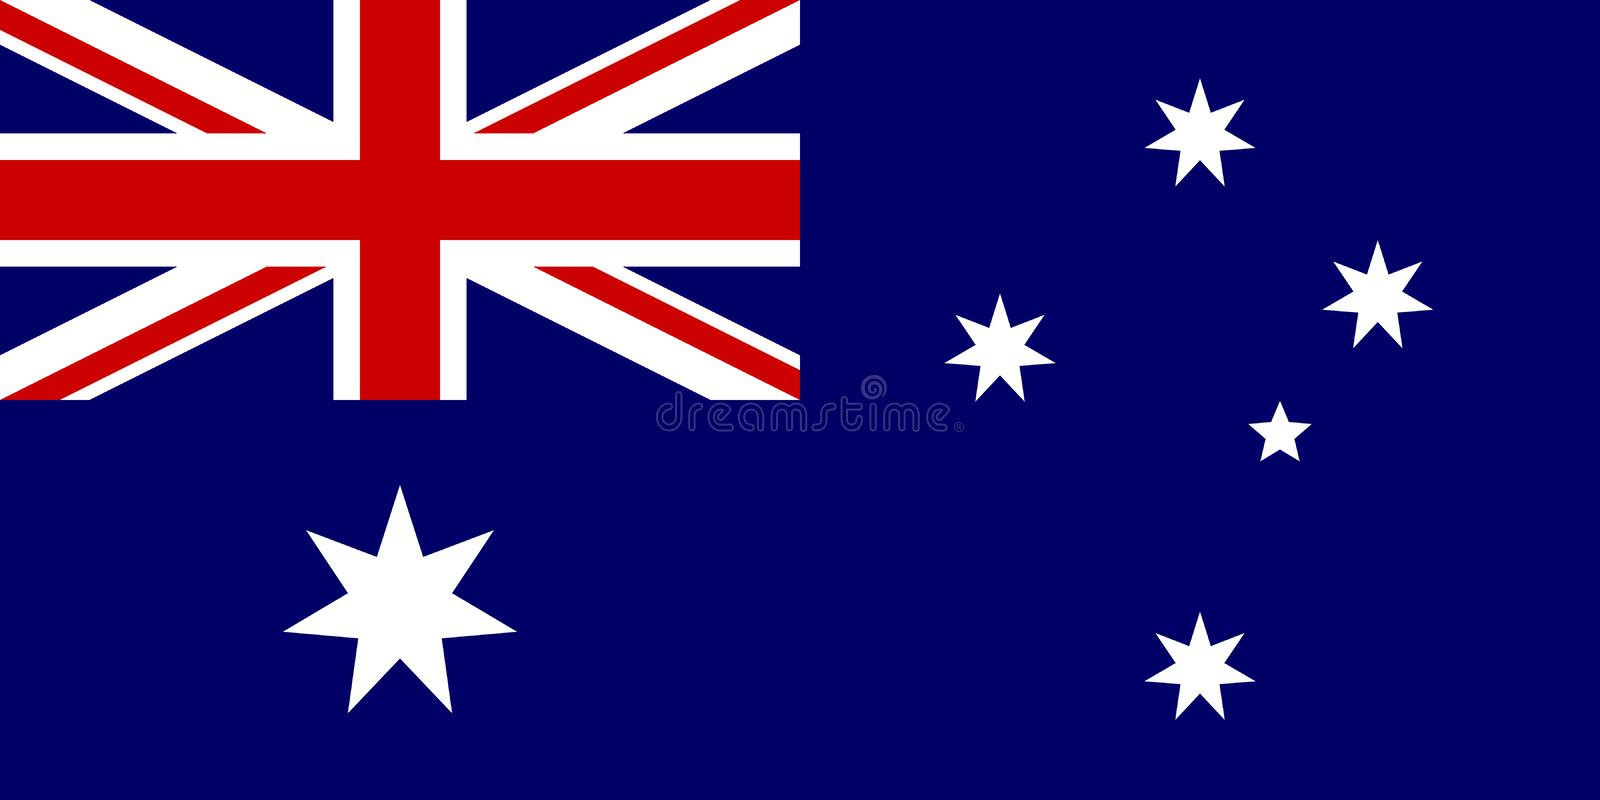 Indicateur australien illustration stock